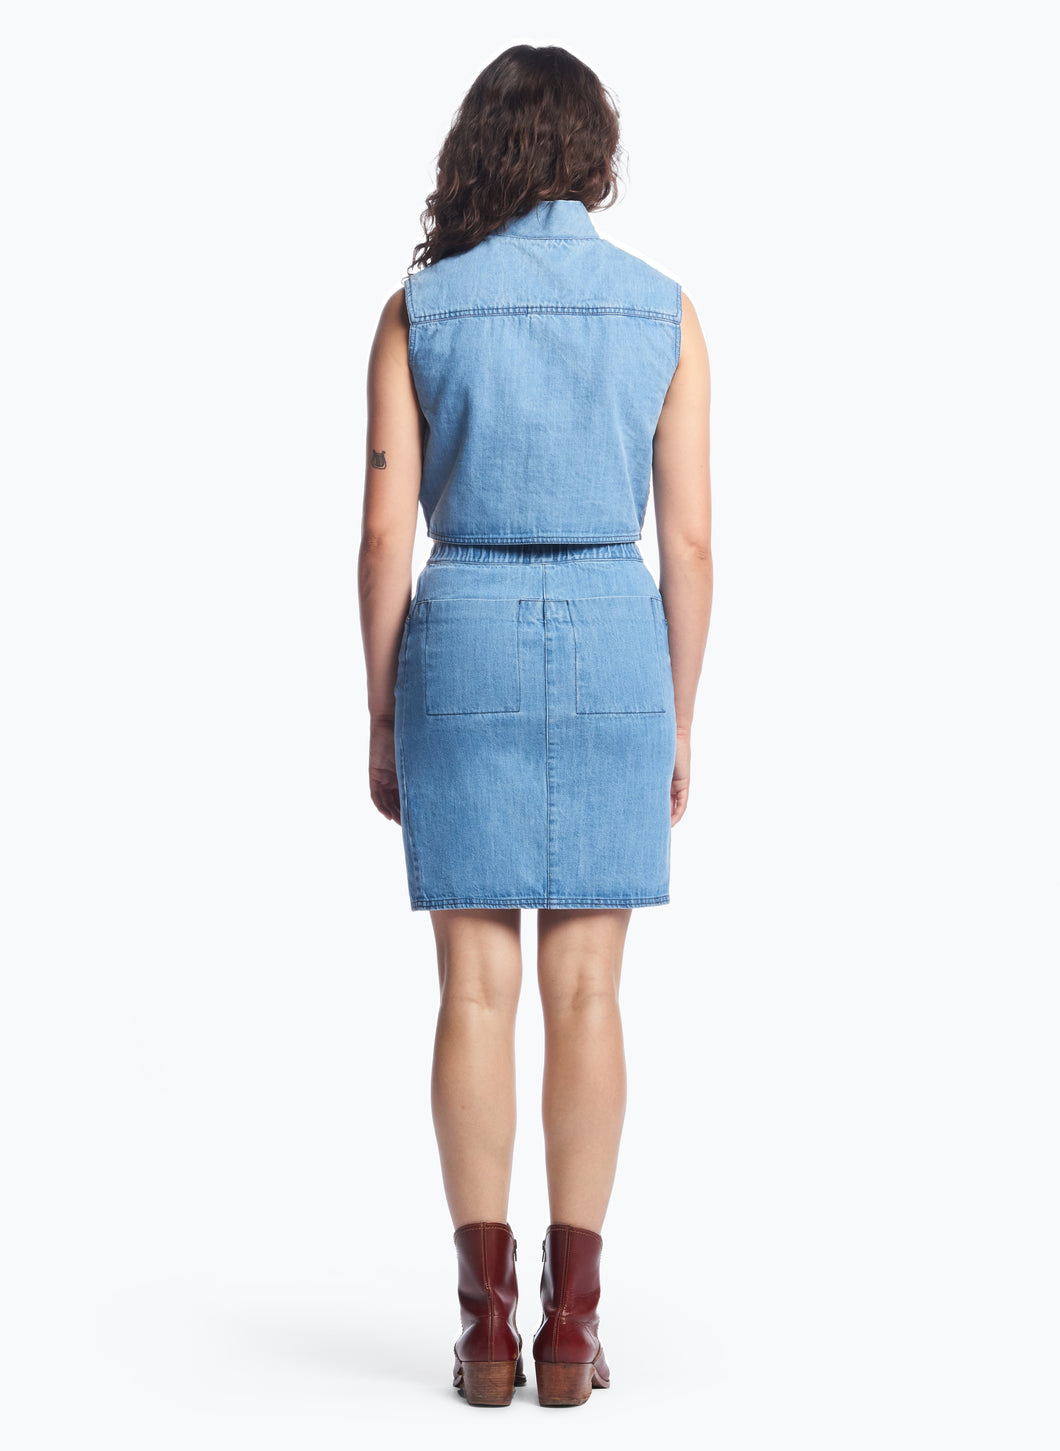 5-Pocket Skirt with Front Cuts in Bleached Denim